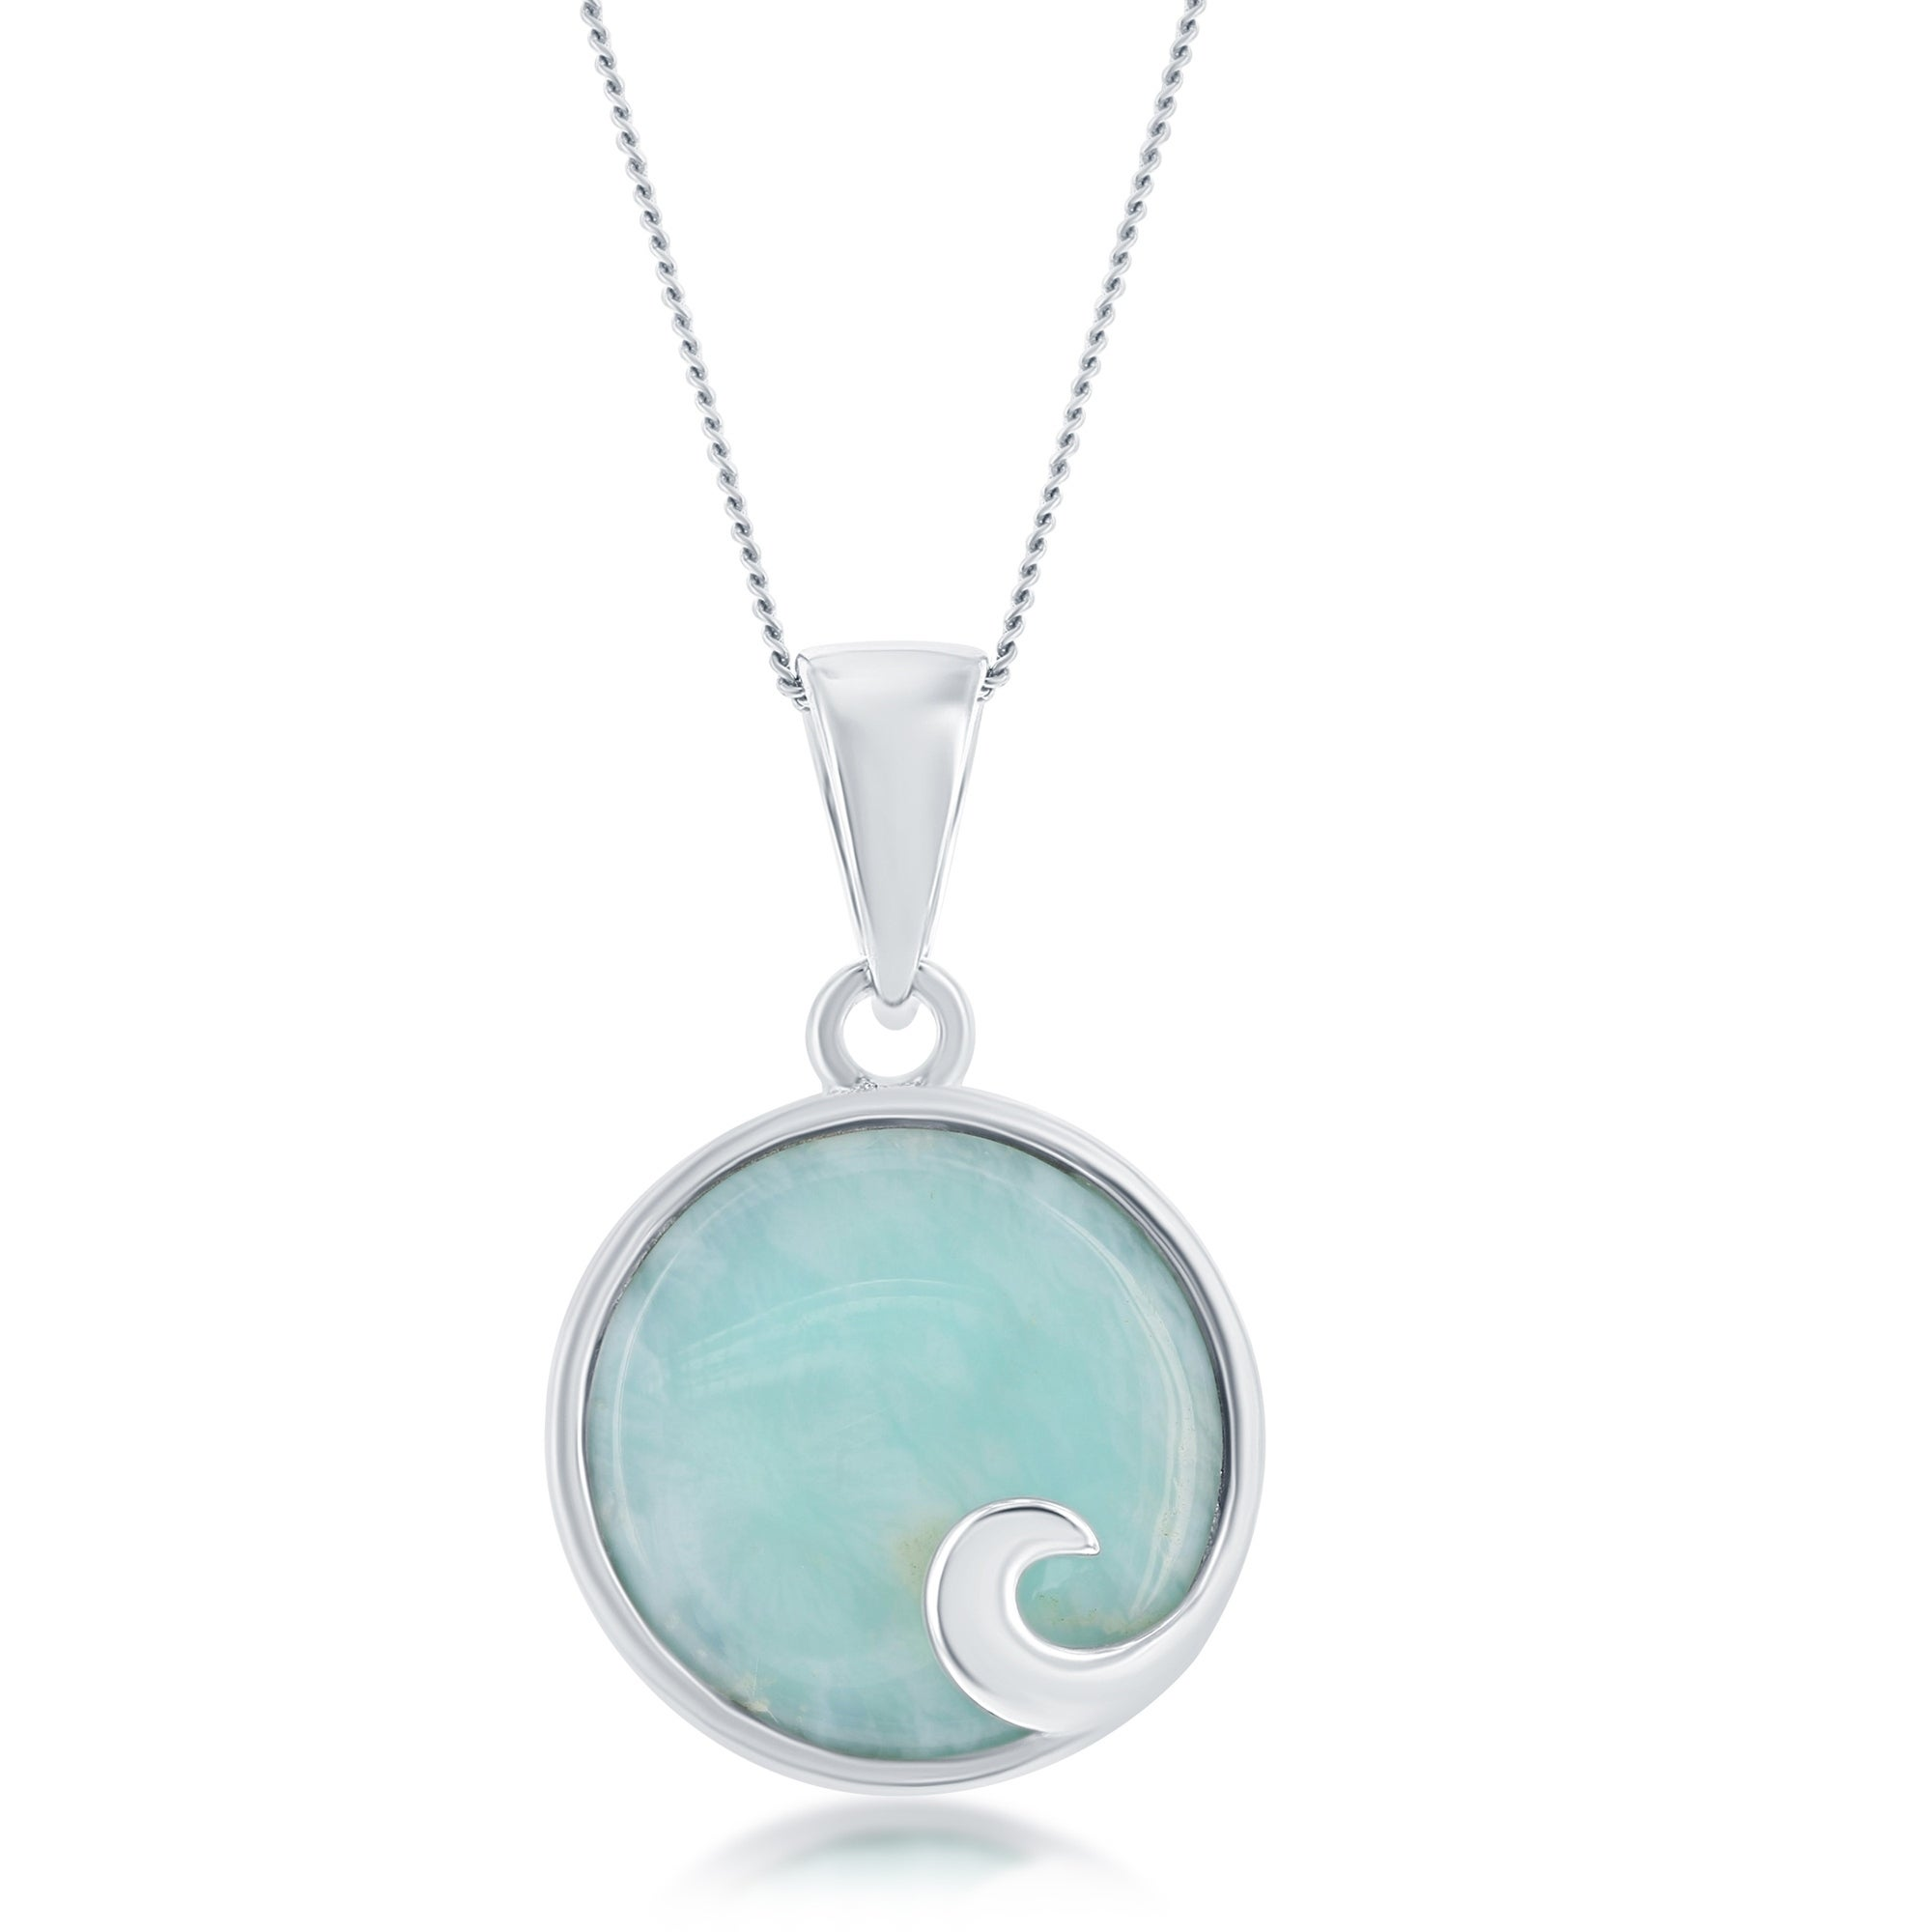 Sterling Silver Natural Round Larimar World 18 Pendnat Necklace